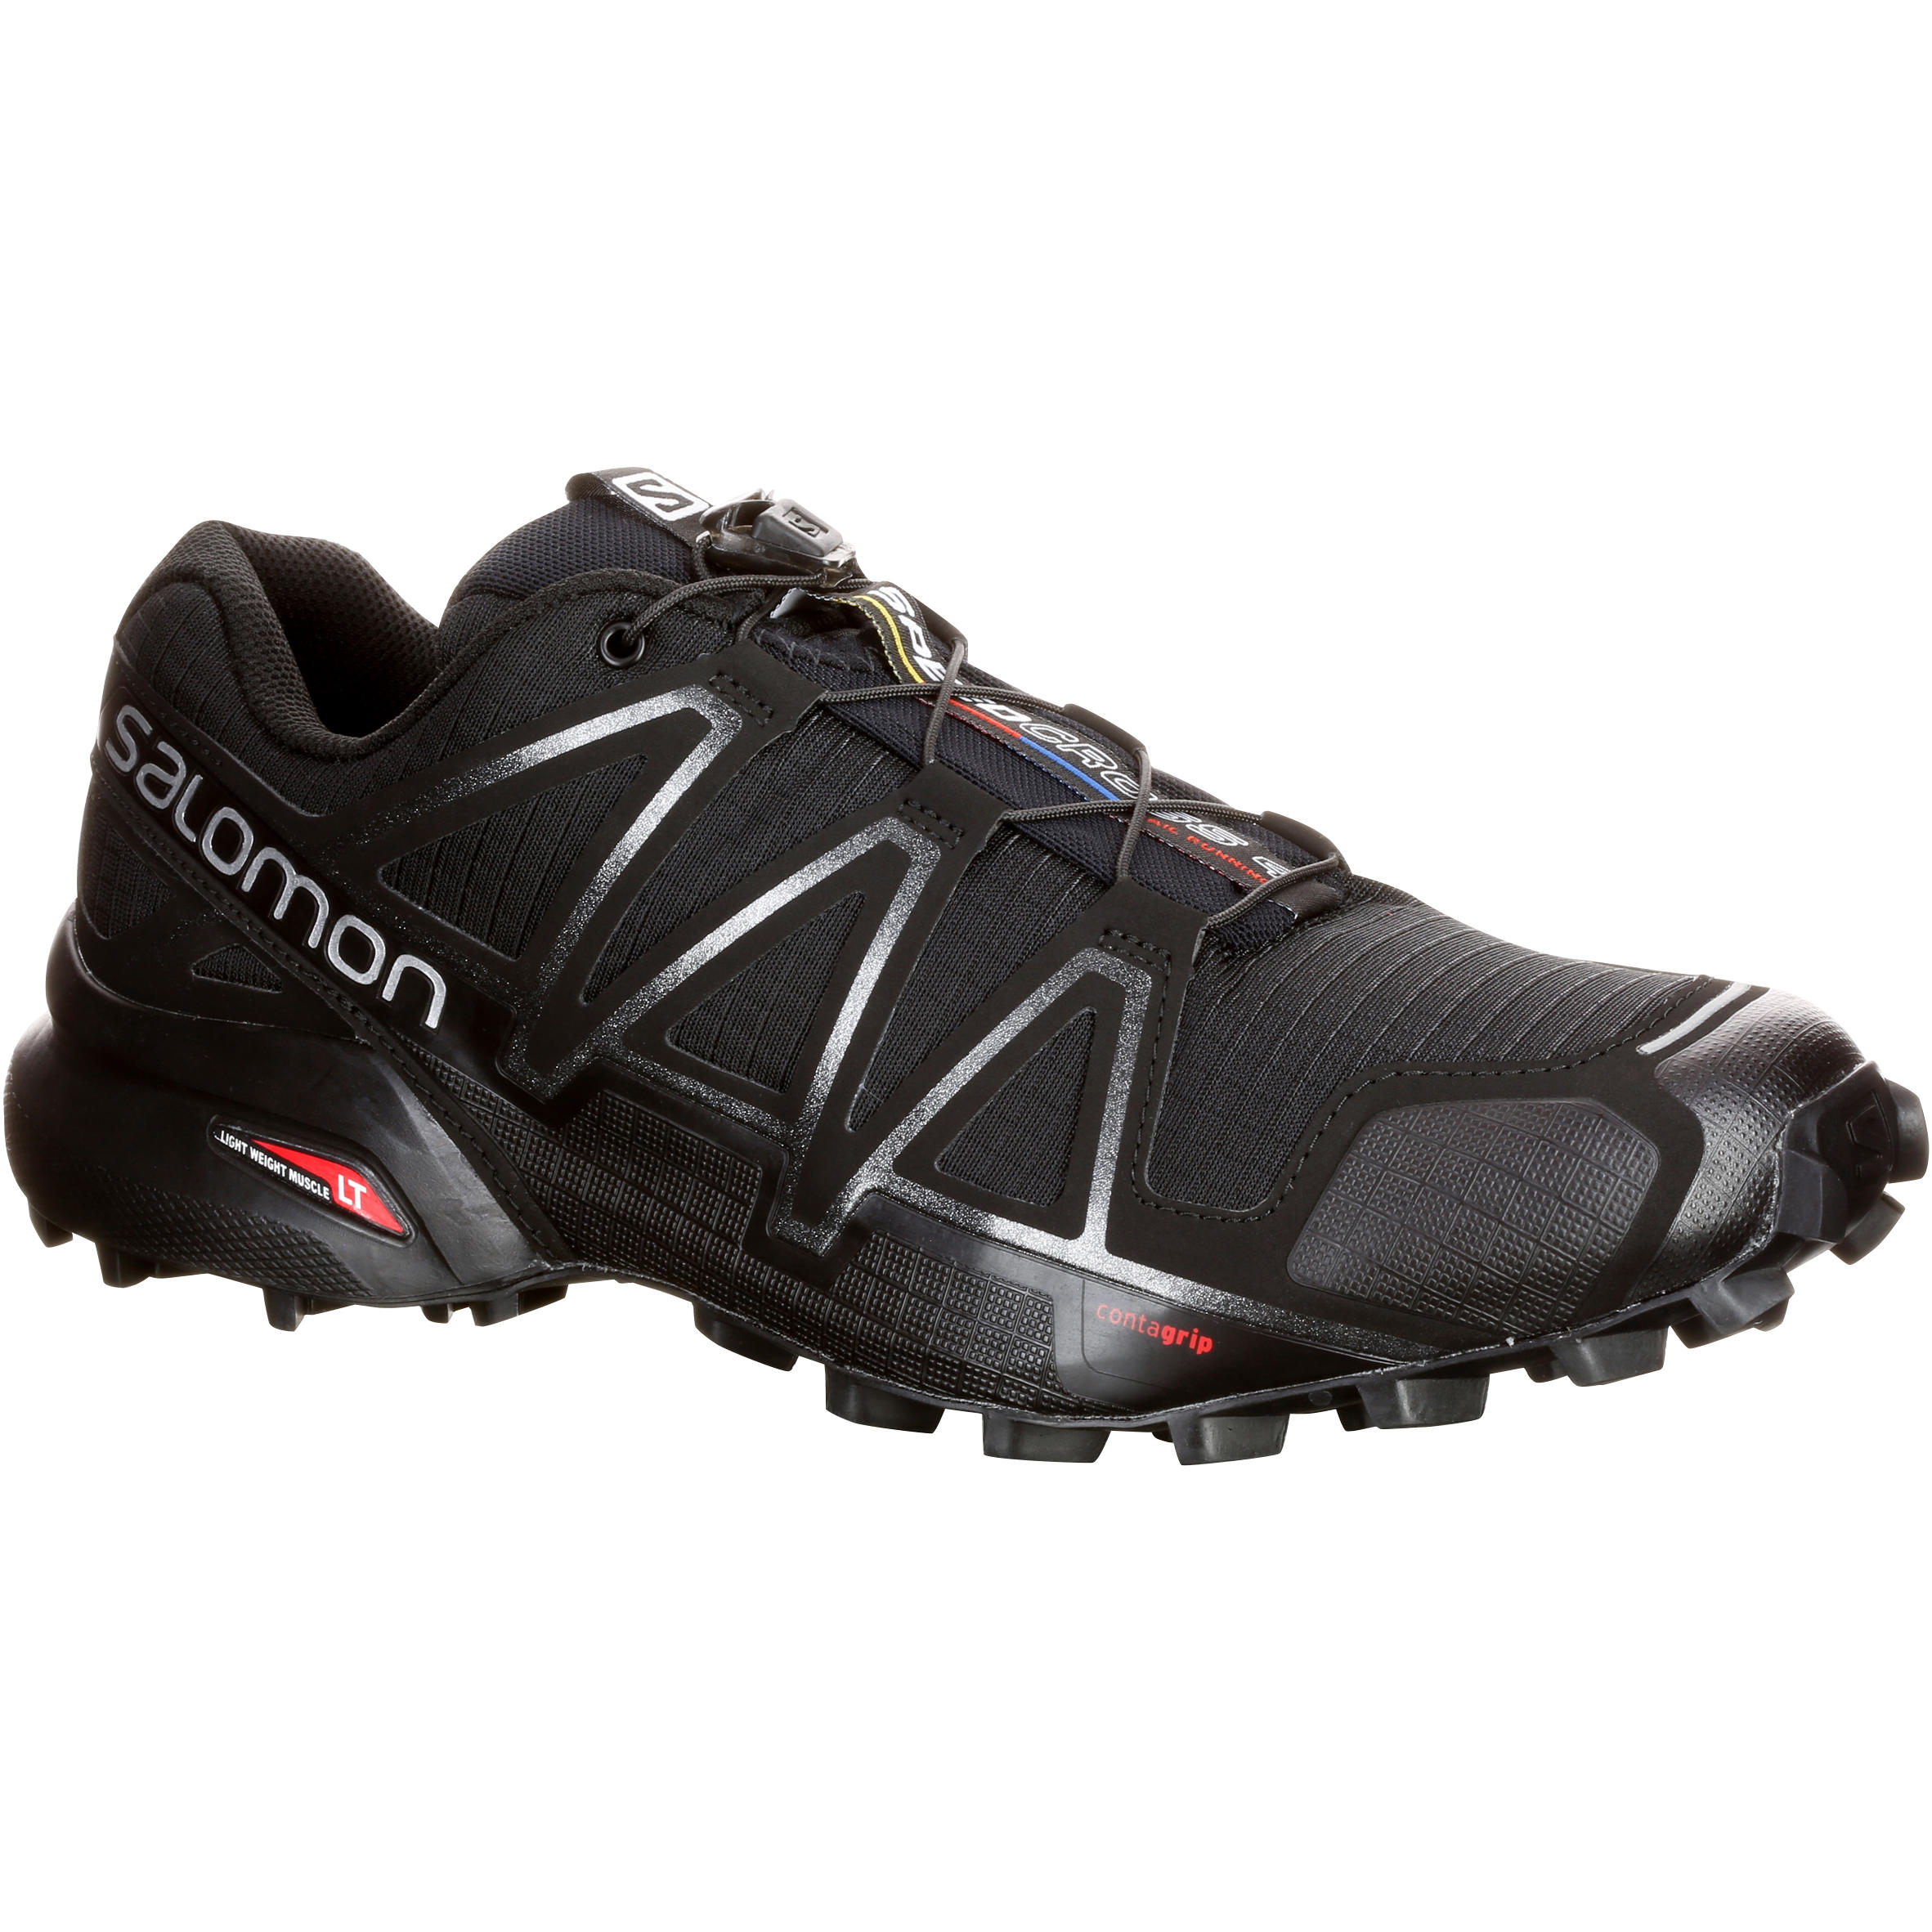 Zapatillas de Trail Running Hombre SALOMON SPEEDCROSS 4 negro